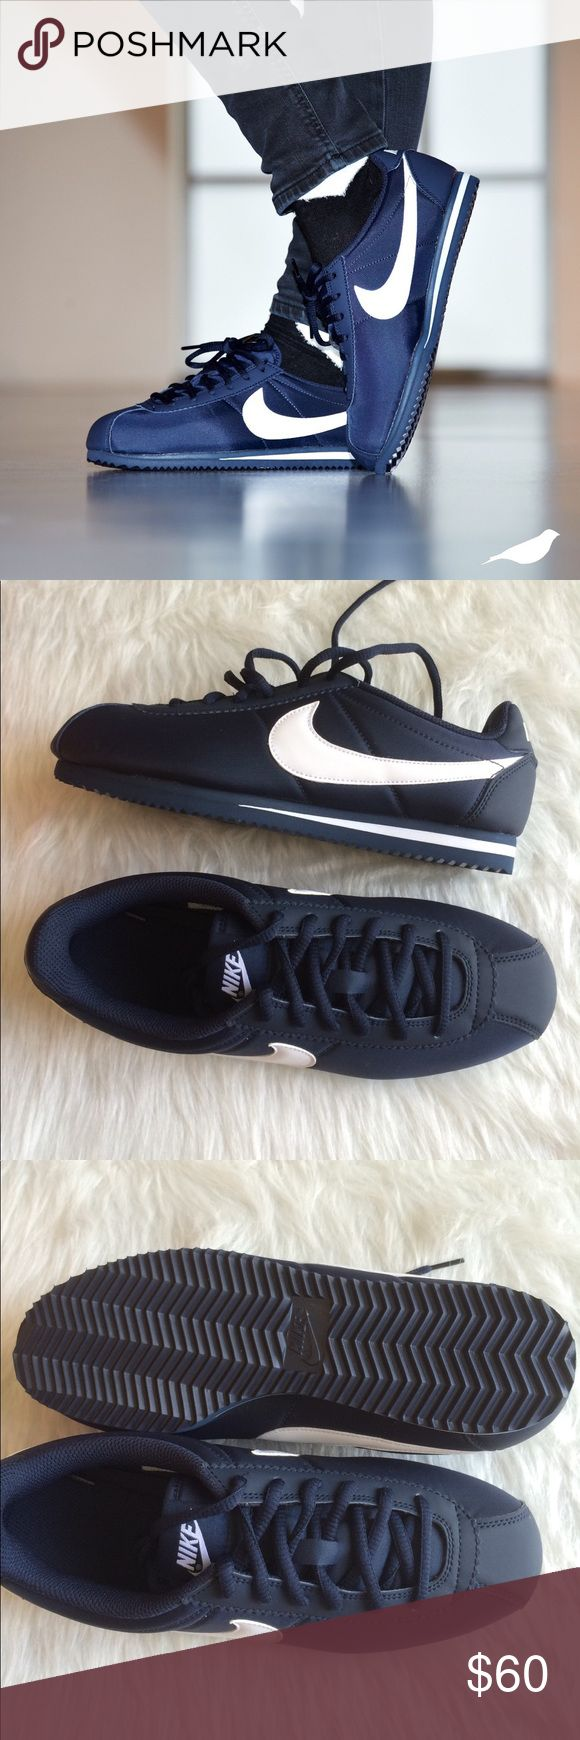 NIKE CORTEZ NYLON SHOES NAVY BLUE WHITE Brand new without box. Ships same day or very next. 100% authentic. Comment if you have any questions before purchasing. Shoes are a youth size 7.y. Which is a women's size 8.5. I have added a sizing chart for reference. Nike Shoes Sneakers